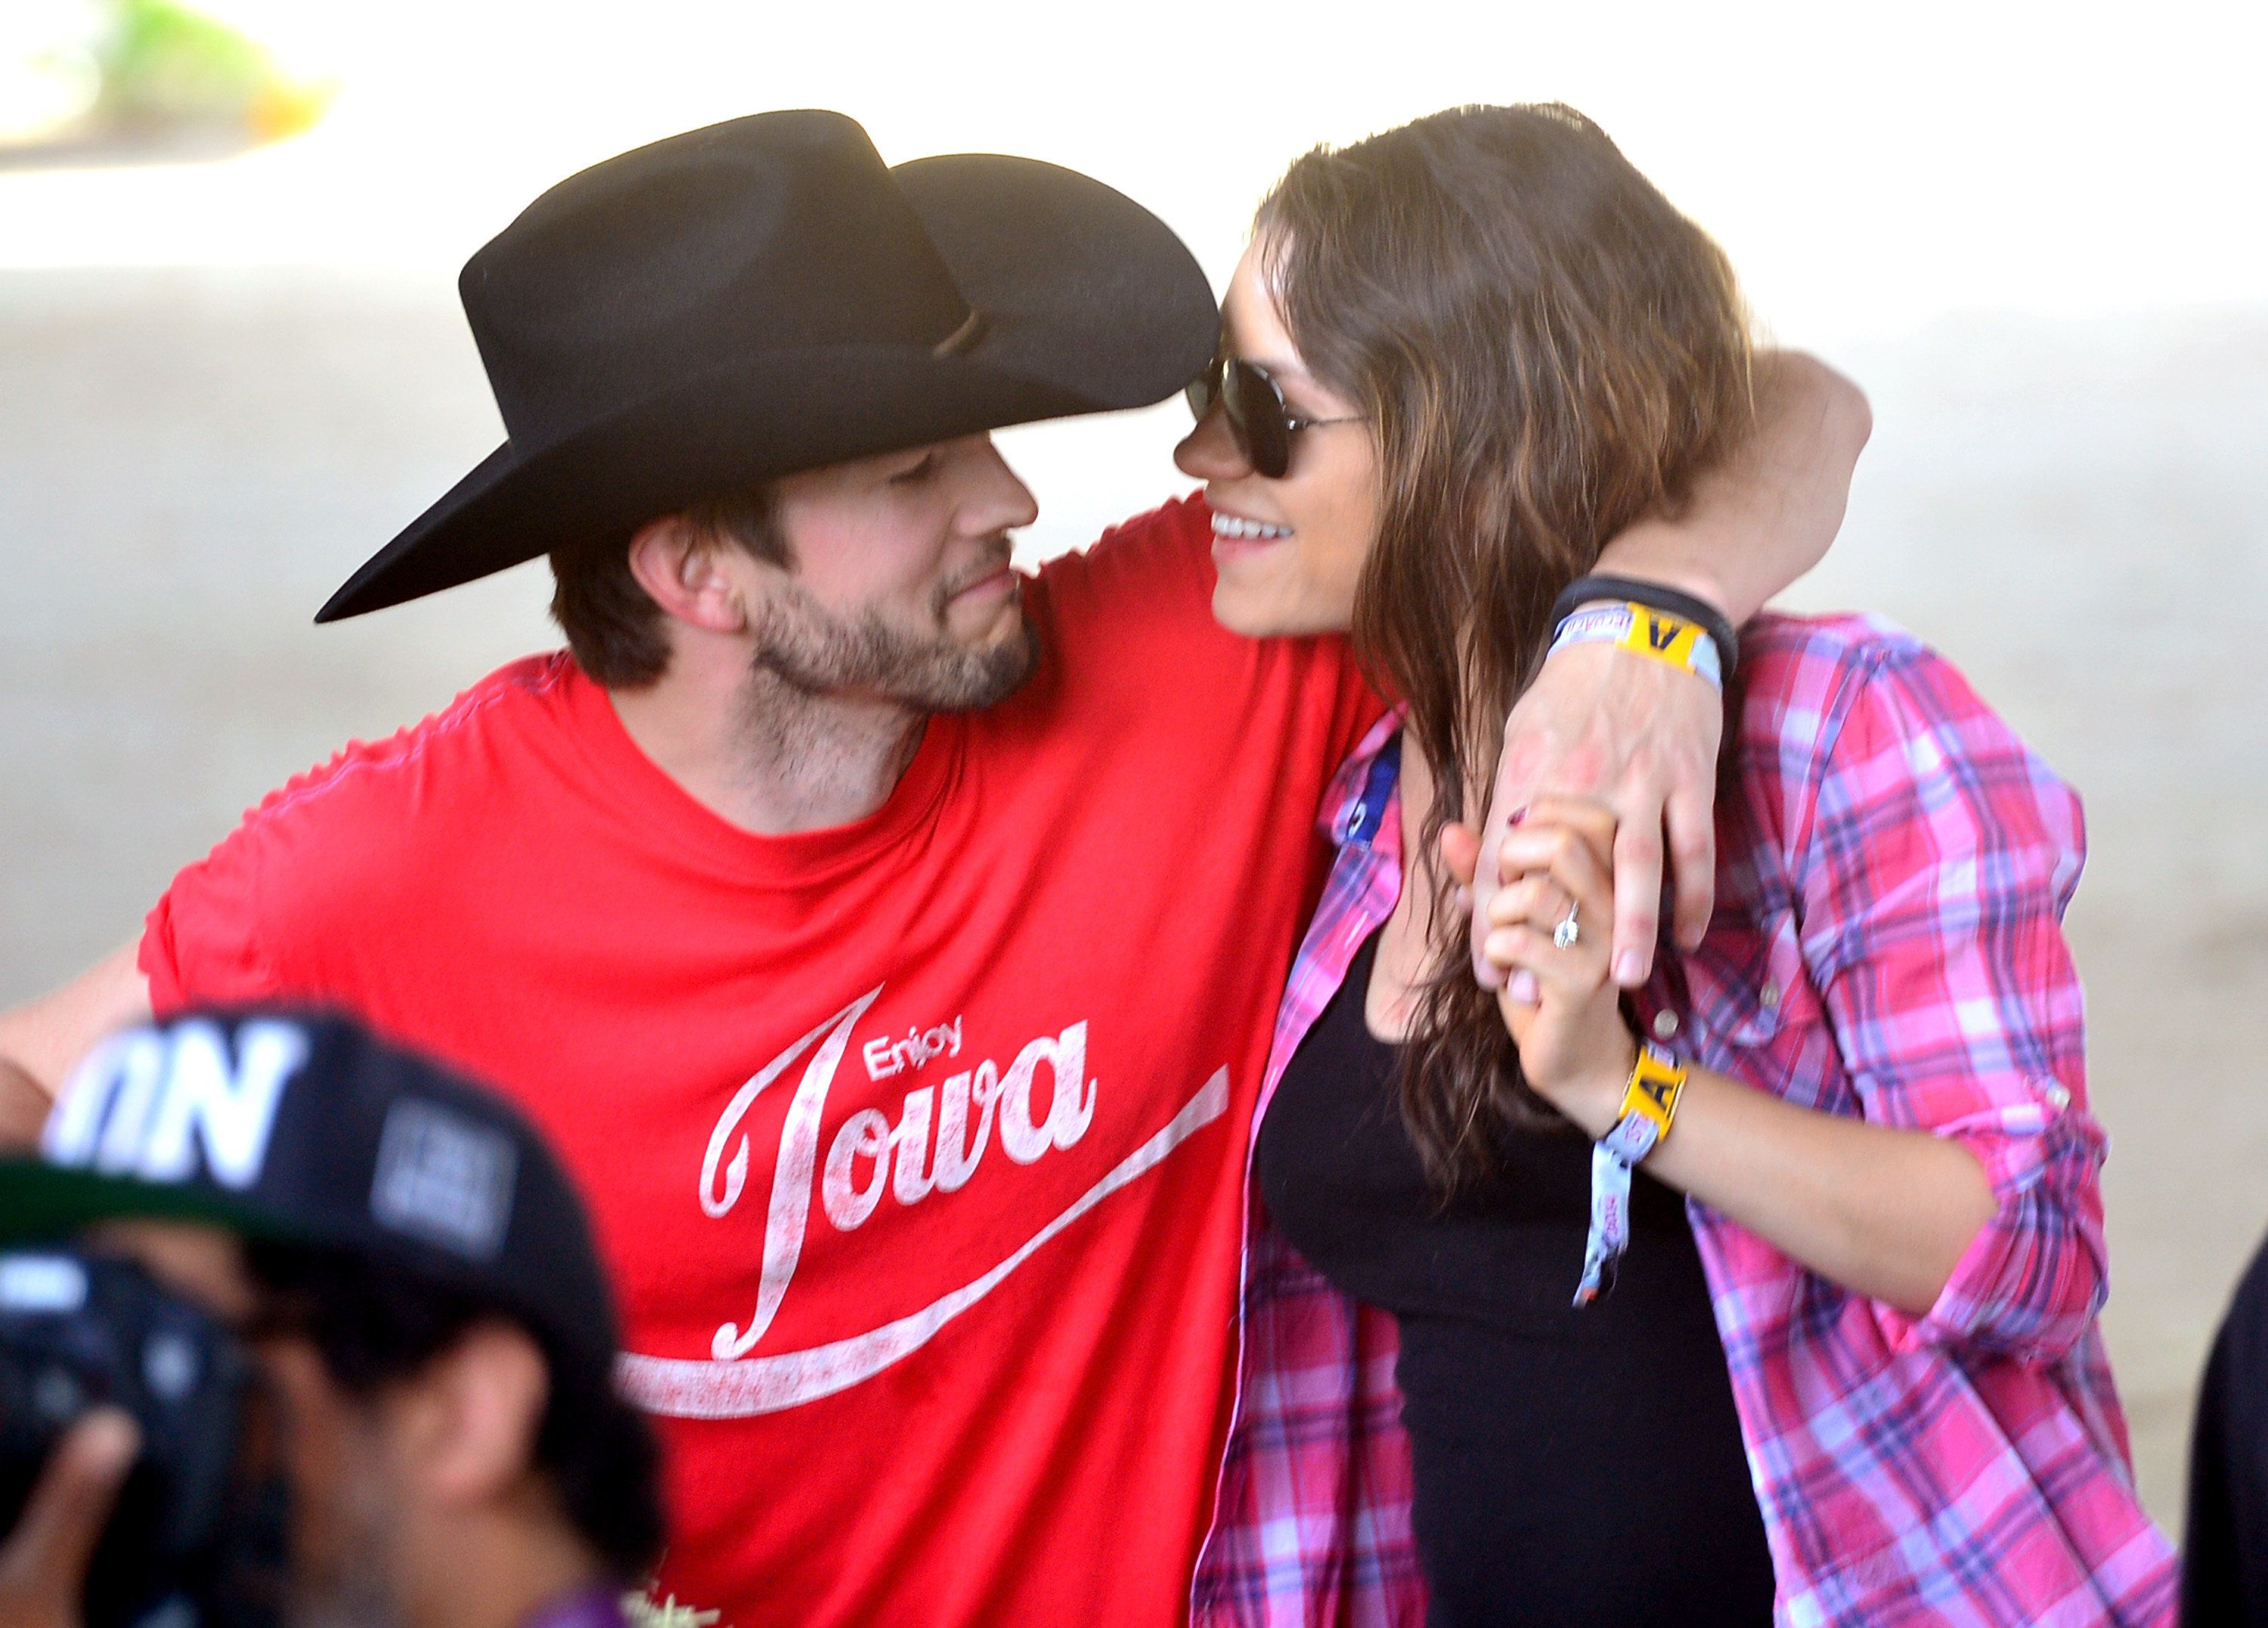 INDIO, CA - APRIL 25:  Actors Ashton Kutcher (L) and Mila Kunis attend day 1 of 2014 Stagecoach: California's Country Music Festival at the Empire Polo Club on April 25, 2014 in Indio, California.  (Photo by Frazer Harrison/Getty Images for Stagecoach)